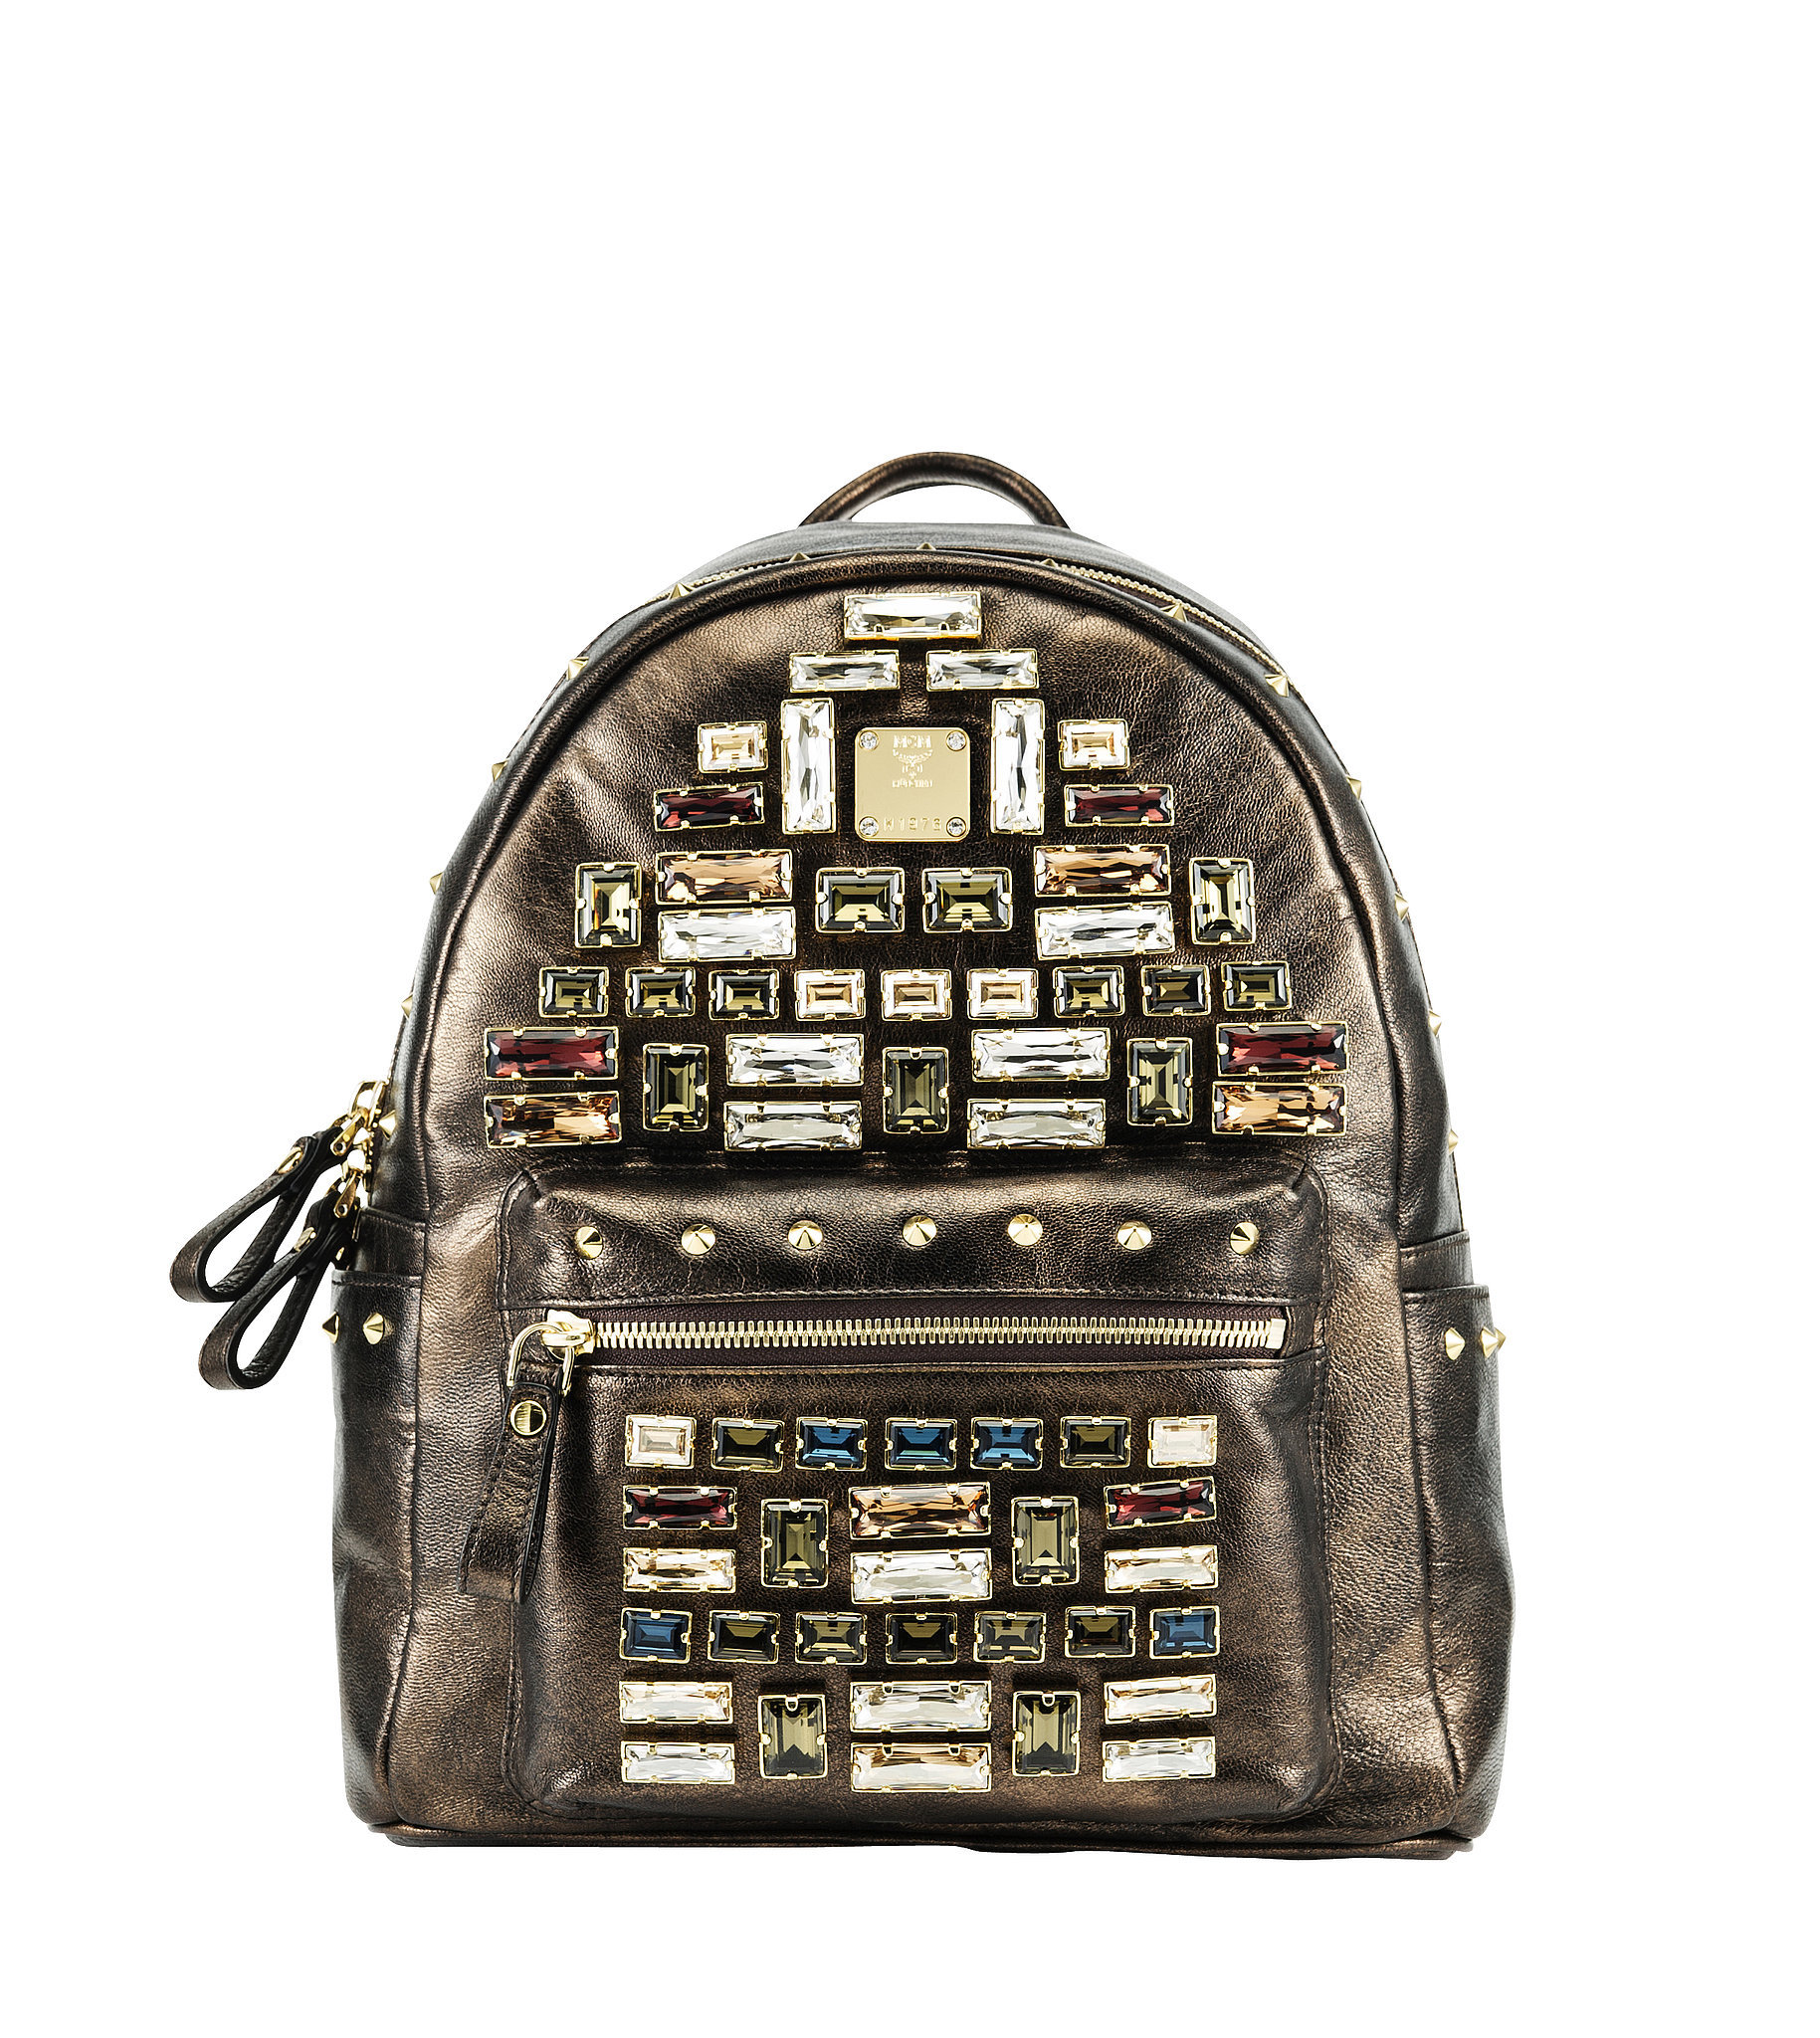 The New Backpack